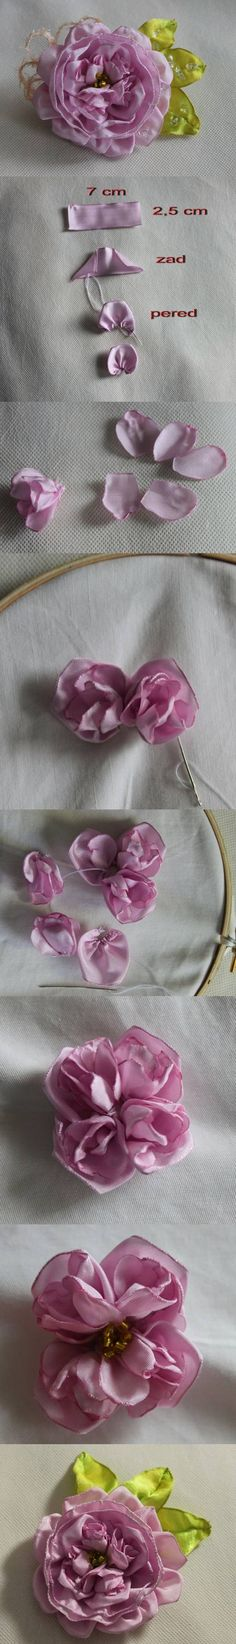 DIY English Rose Brooch Tutorial